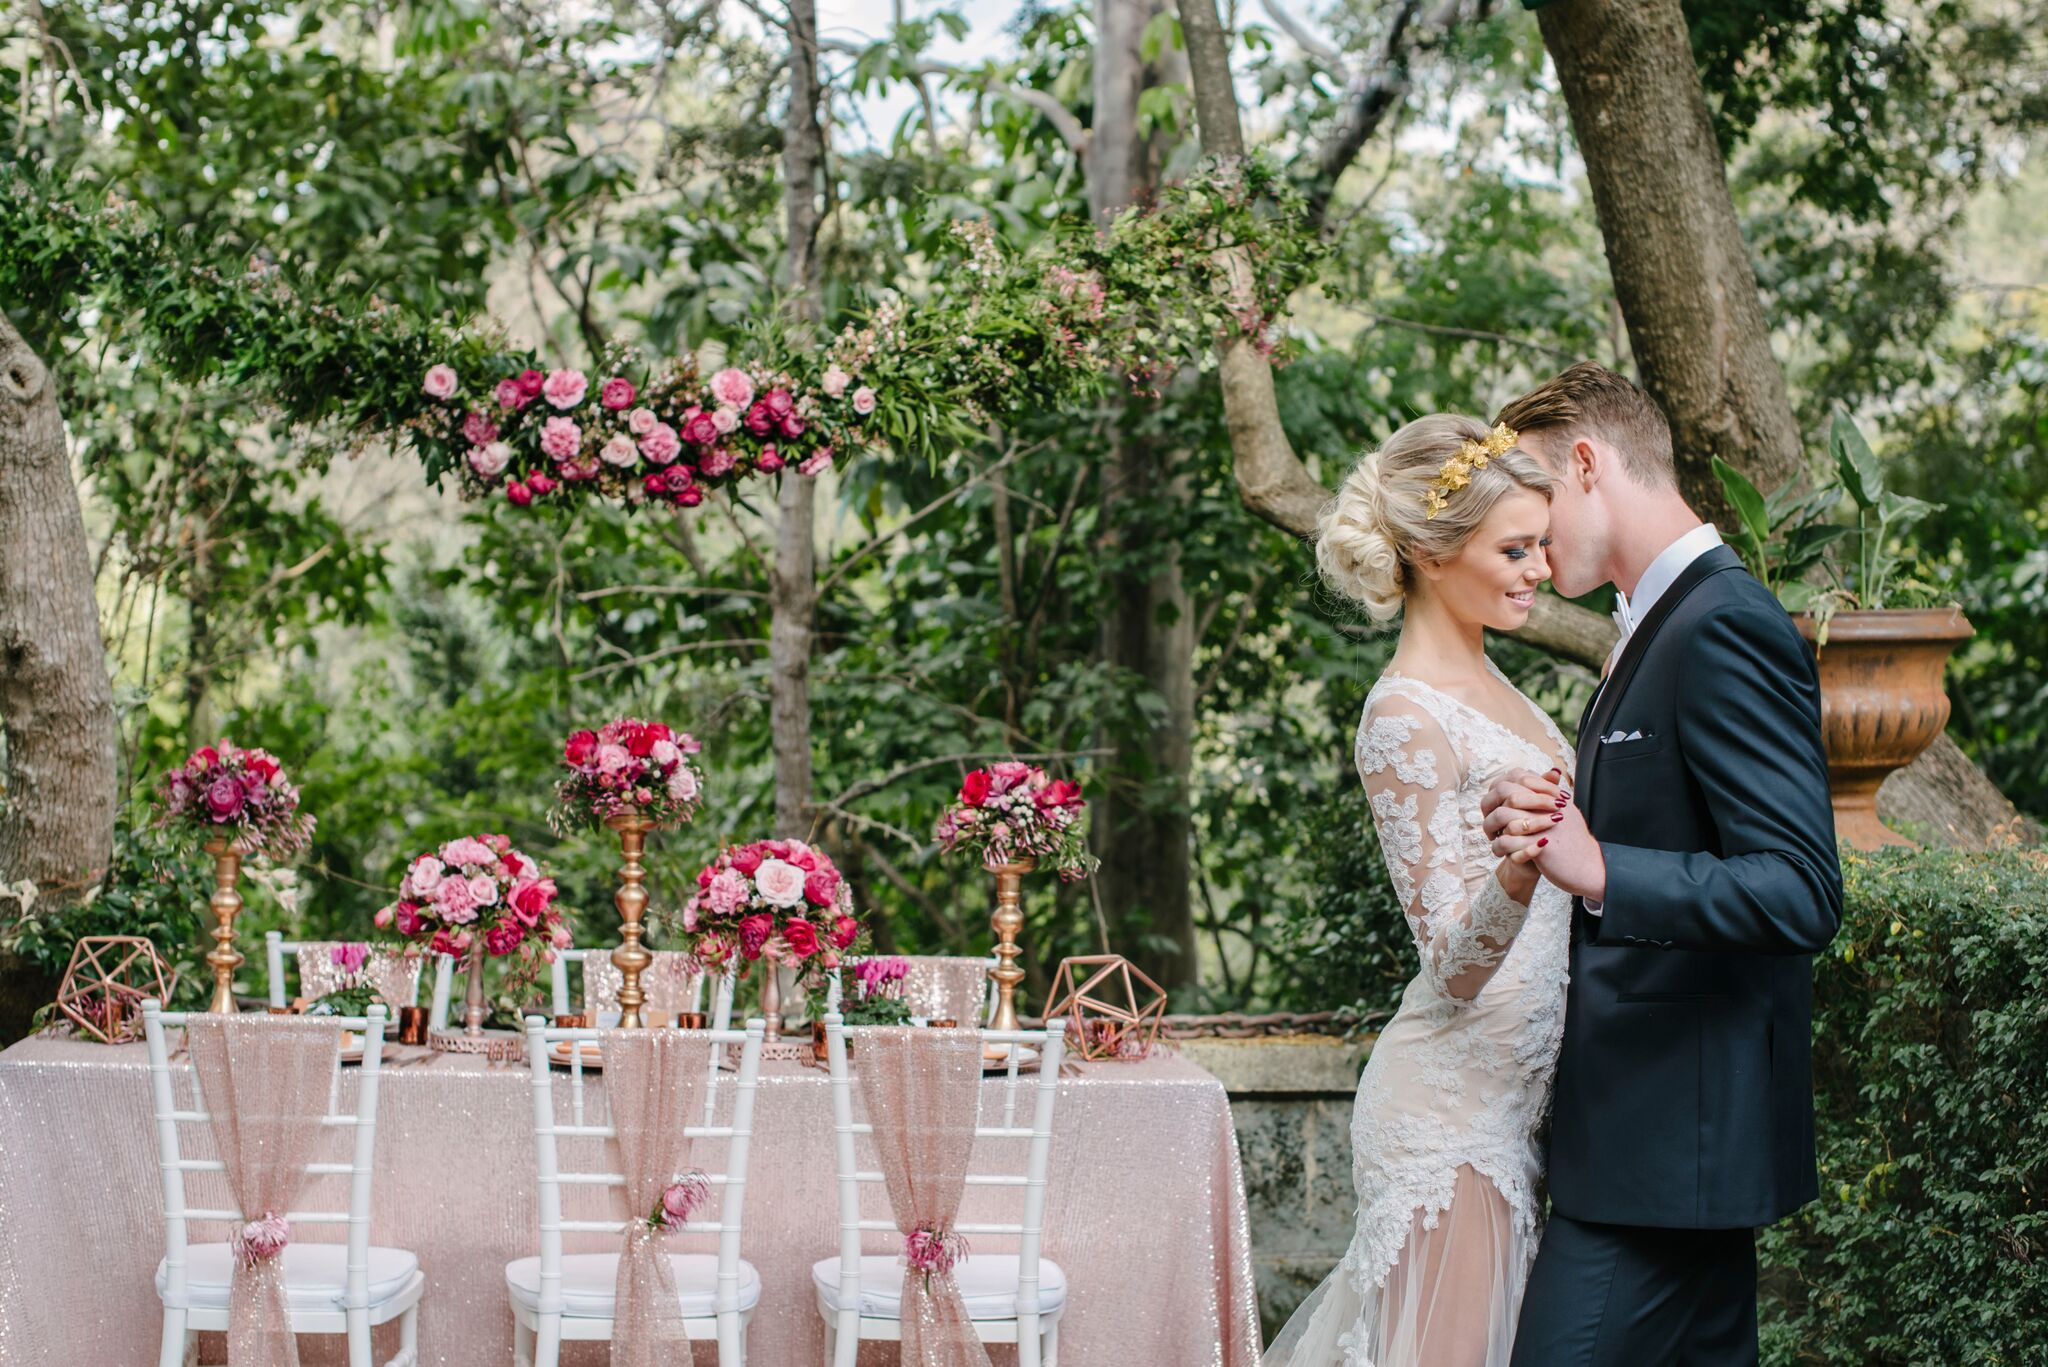 Home beautiful weddings welcome to beautiful weddings a multiple award winning wedding styling company specialising in creating dream wedding ceremonies receptions throughout junglespirit Image collections